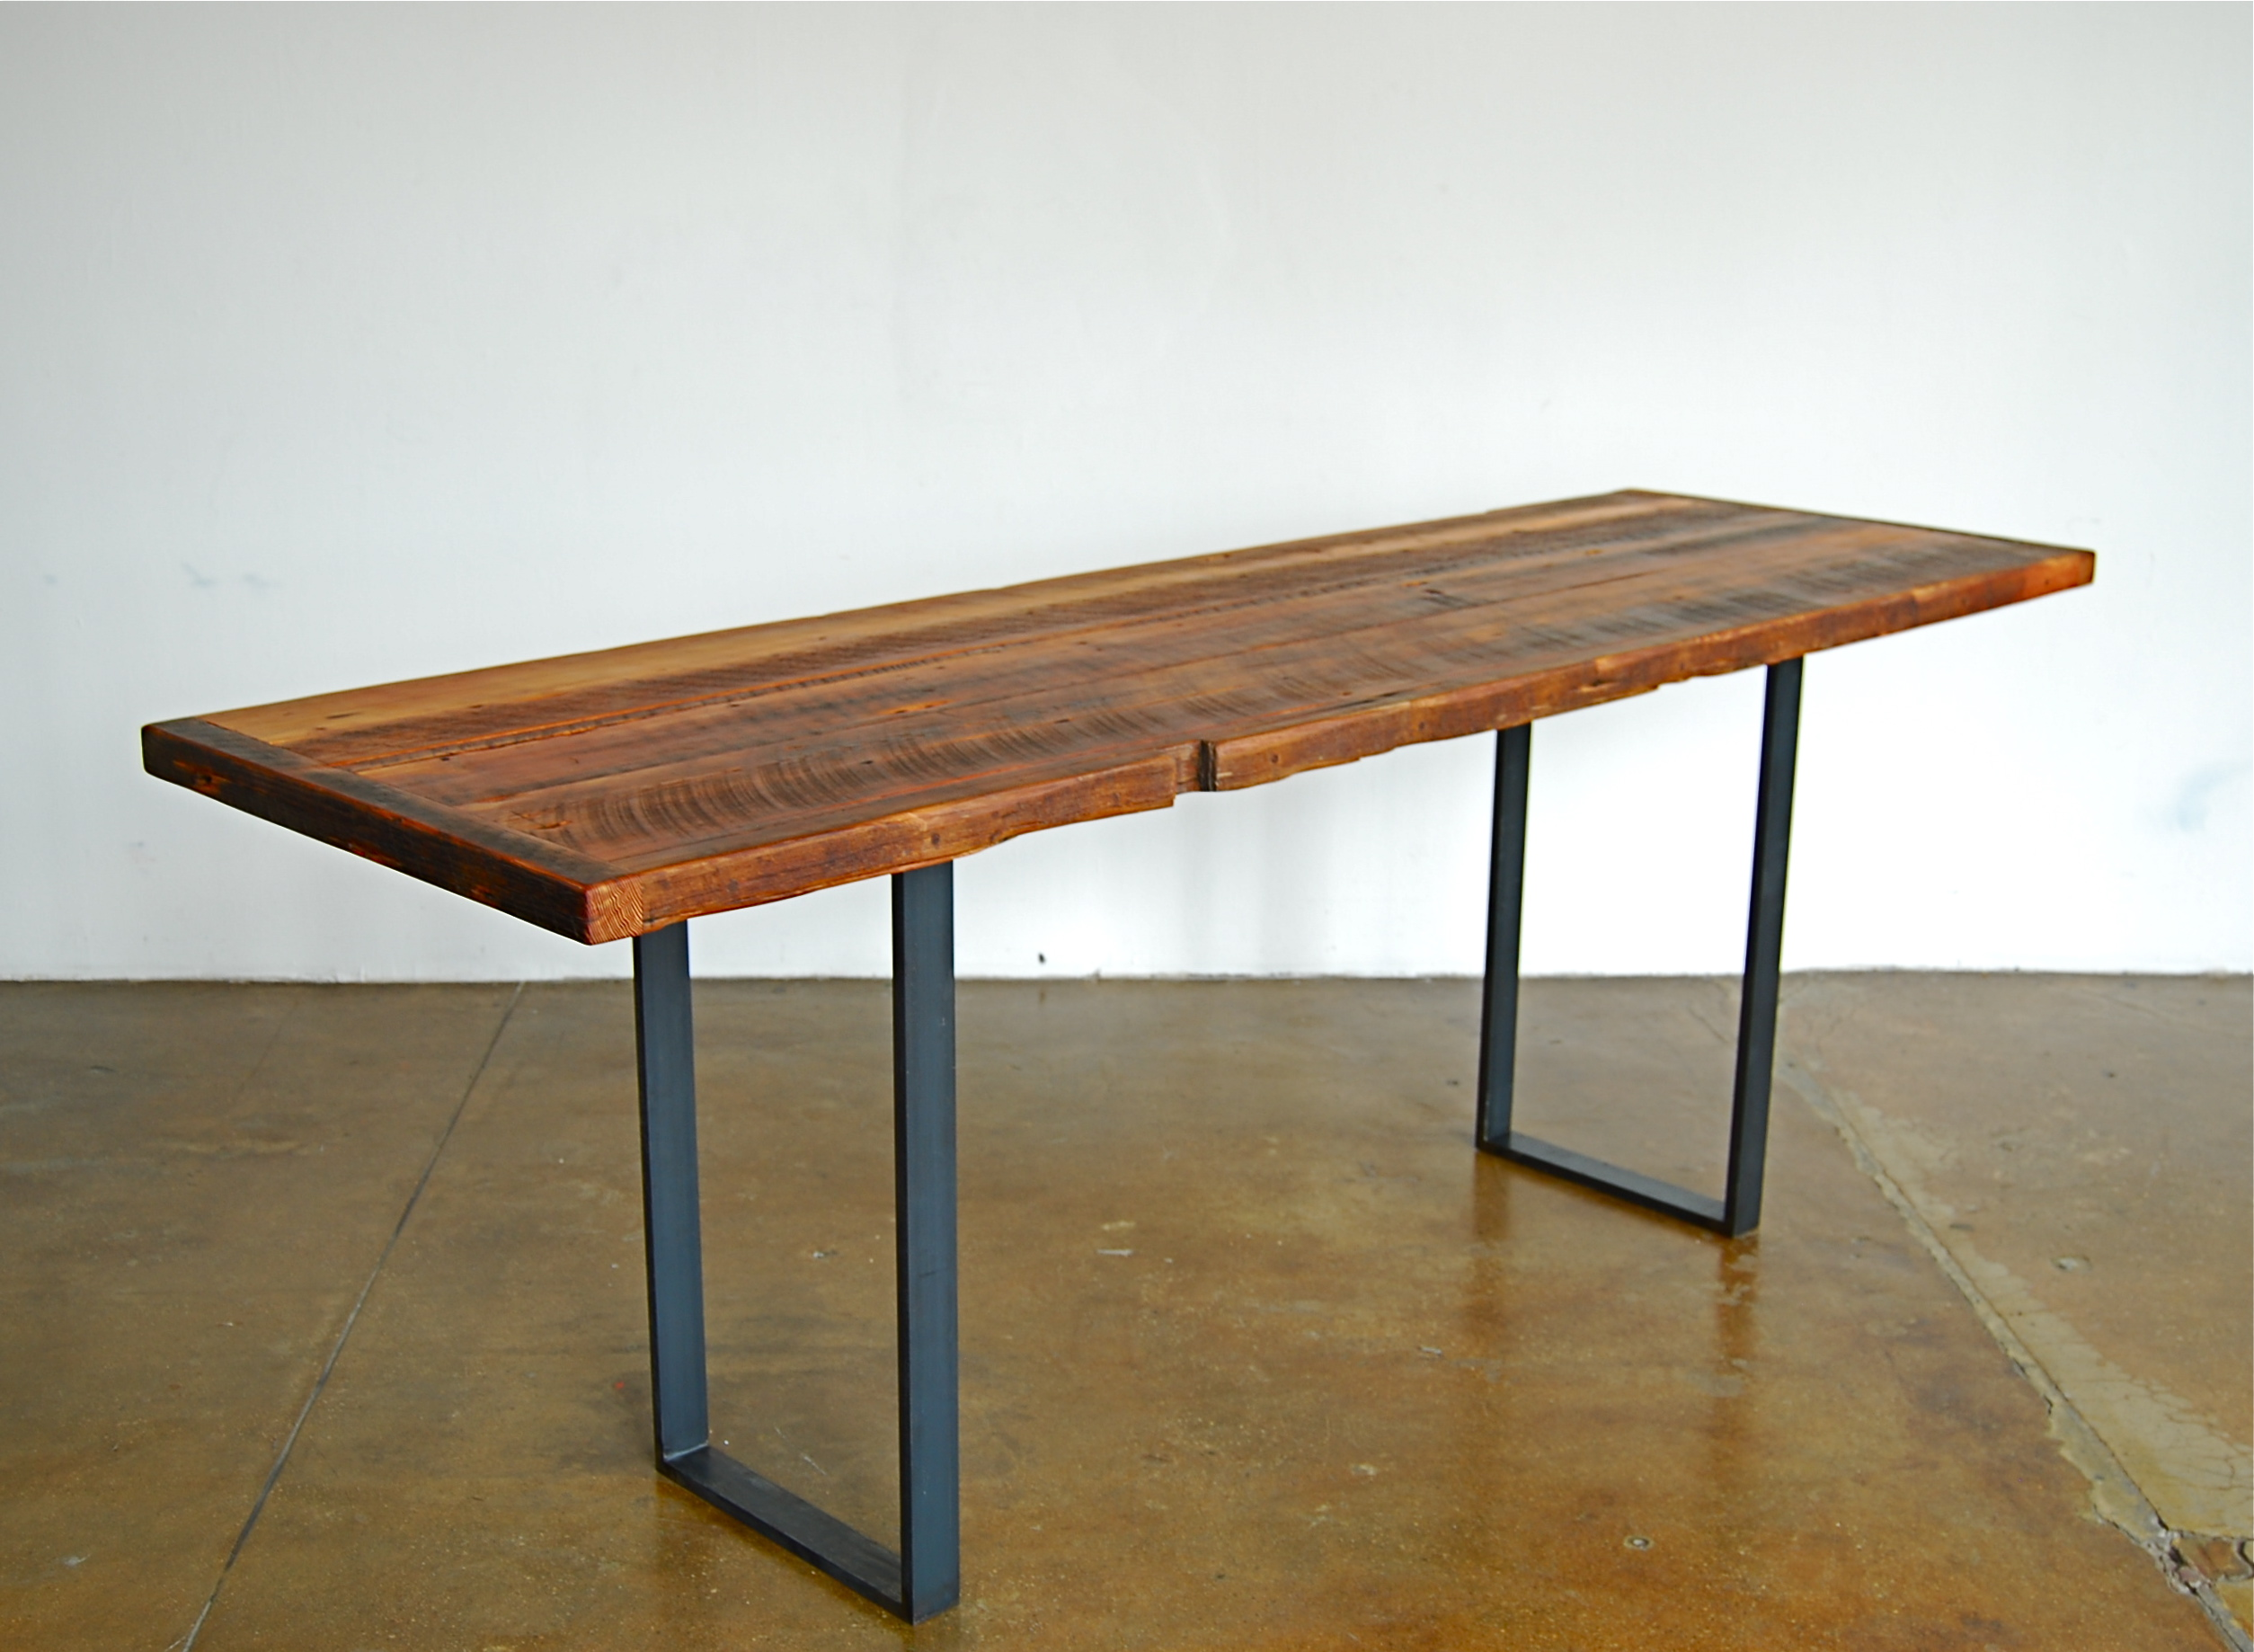 Dwelling} Dining Tables on Pinterest  wood dining tables, reclaimed ...